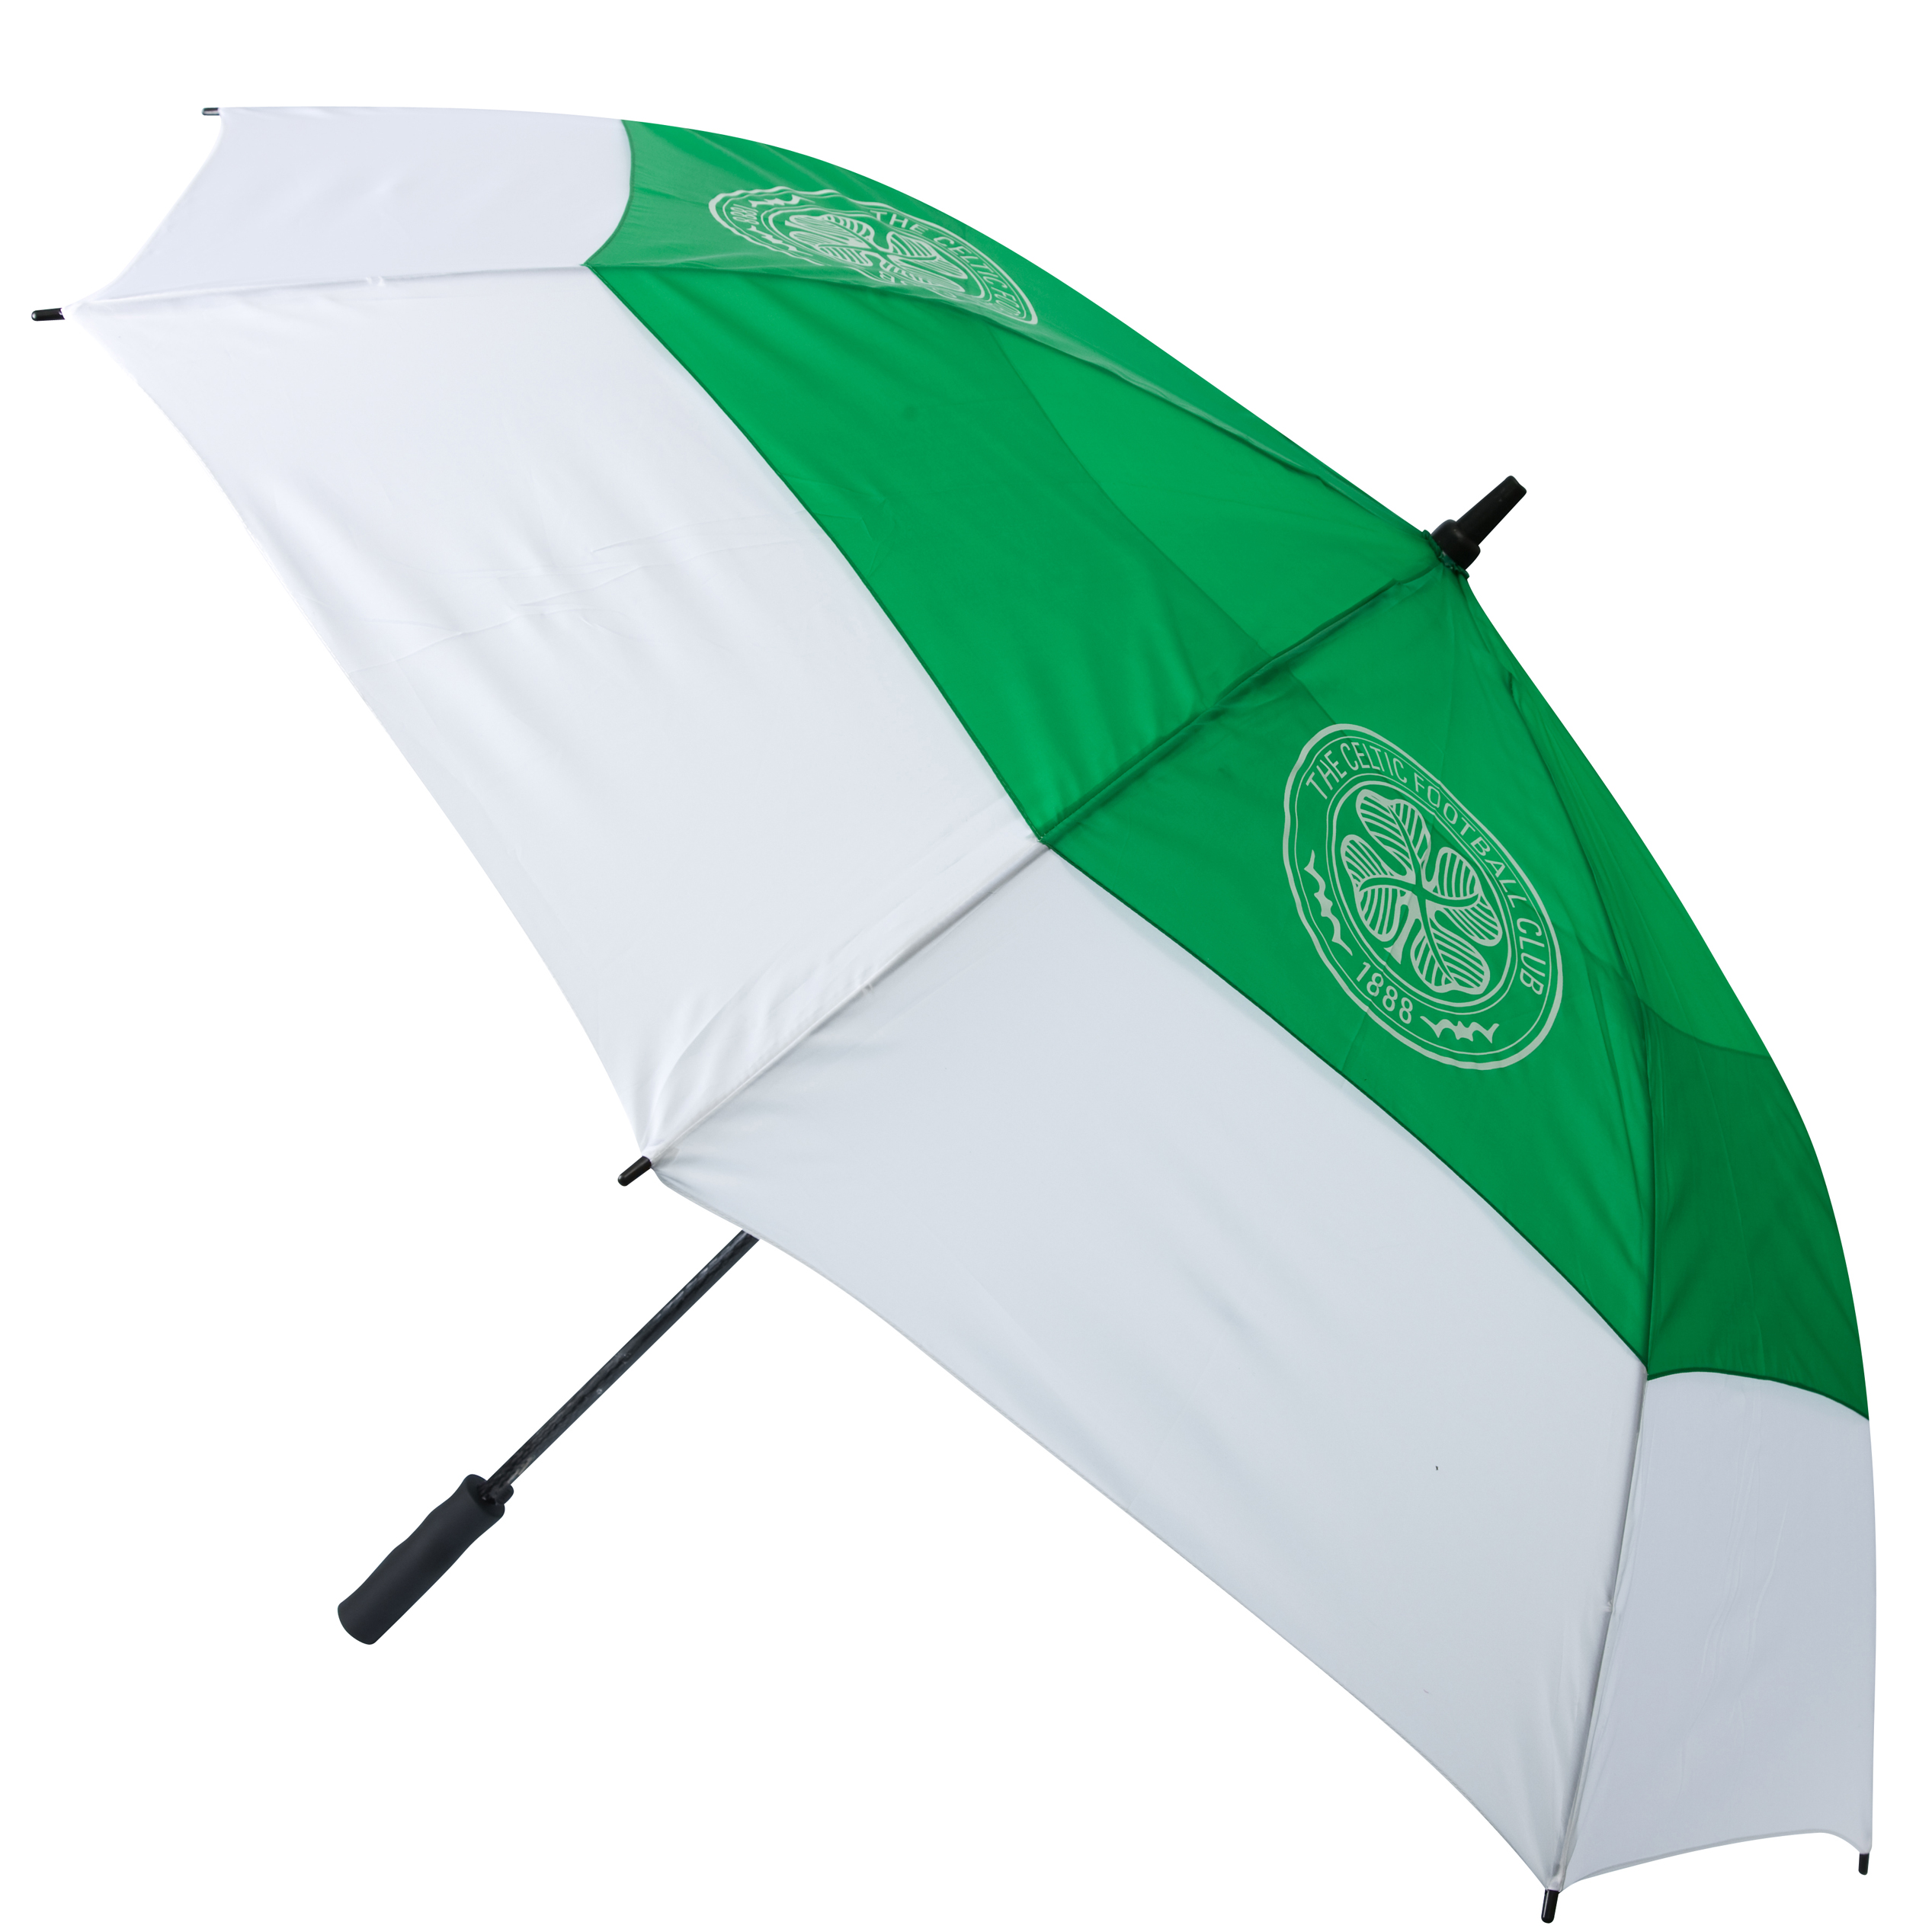 Celtic Golf Umbrella - Green/White